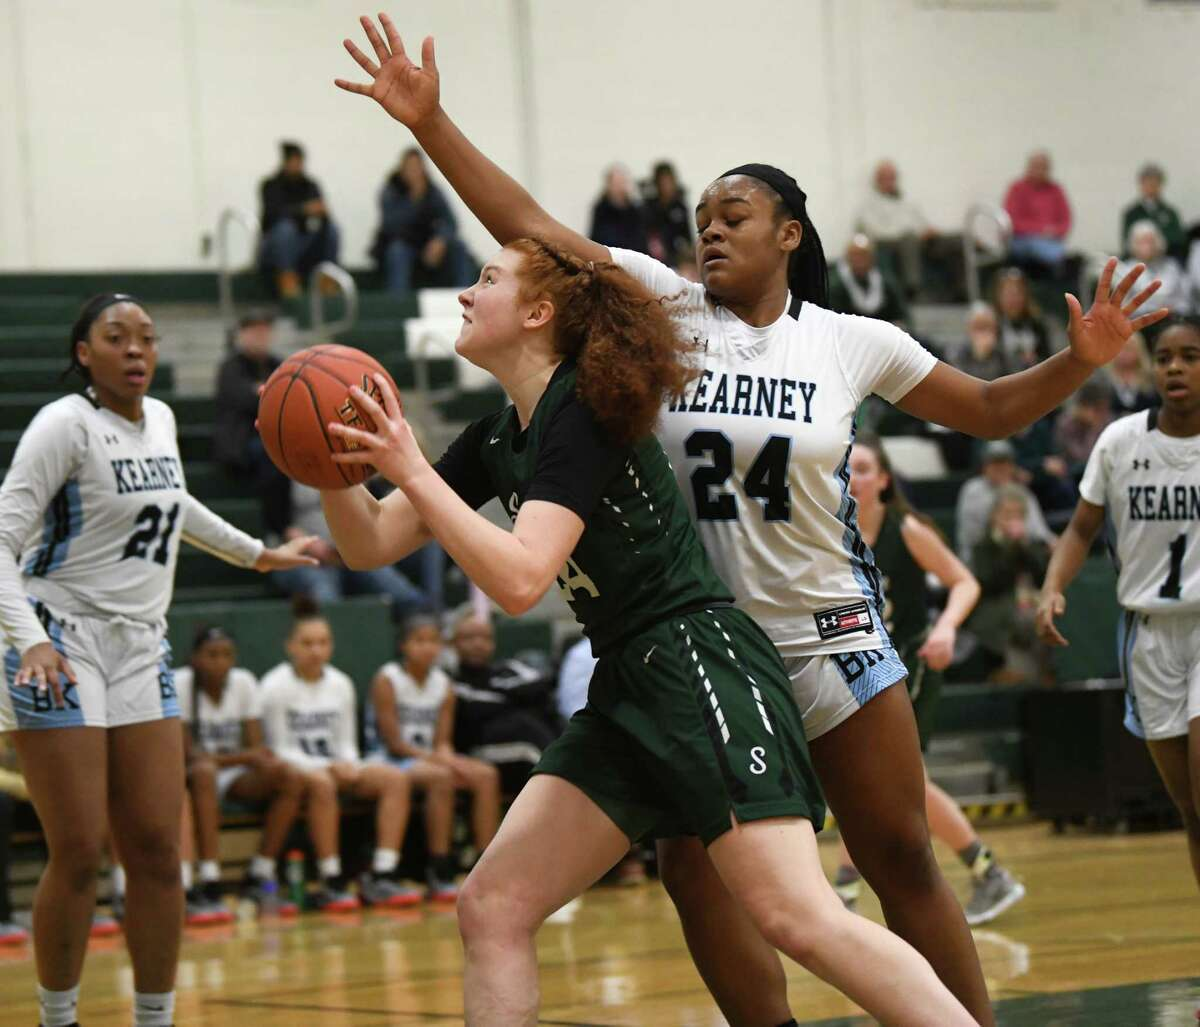 Shenendehowa's Bella Stuart drives to the basket against Bishop Kearney's Taylor Norris during a game on Monday, Jan. 20, 2020 in Clifton Park, N.Y. (Lori Van Buren/Times Union)